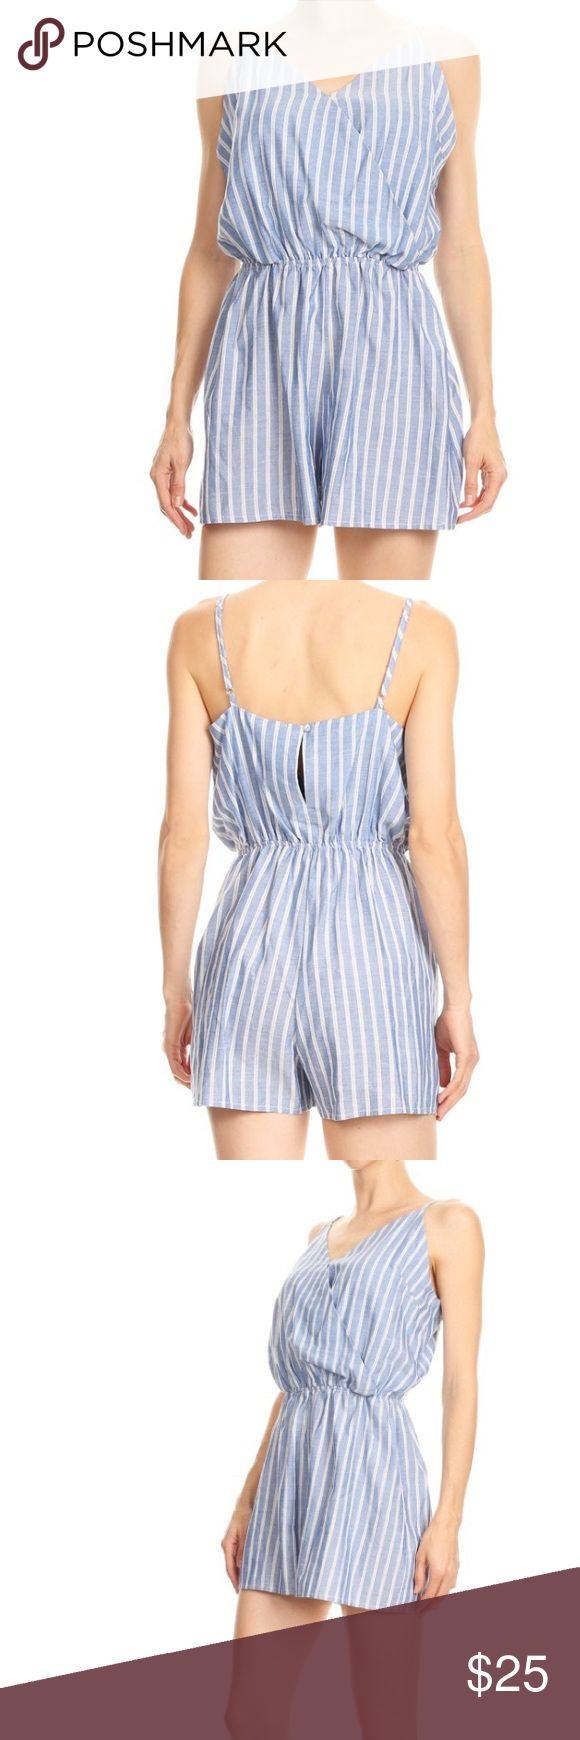 🎉 Just In!! 🎉 🆕 Striped Cotton Romper 💙 Super cute!!! 💙   🆕 Sizes S M & L.  Only one is each size available!  🌸 Jewelry shown for style suggestions only! 🌸  Does not come with clothing and is available to purchase separately.  All clothing items available in my Posh boutique are available with a 10% bundle discount! 💕🛍  Reasonable offers considered. No trades, holds, or Paypal. Thank you 💜 Pants Jumpsuits & Rompers